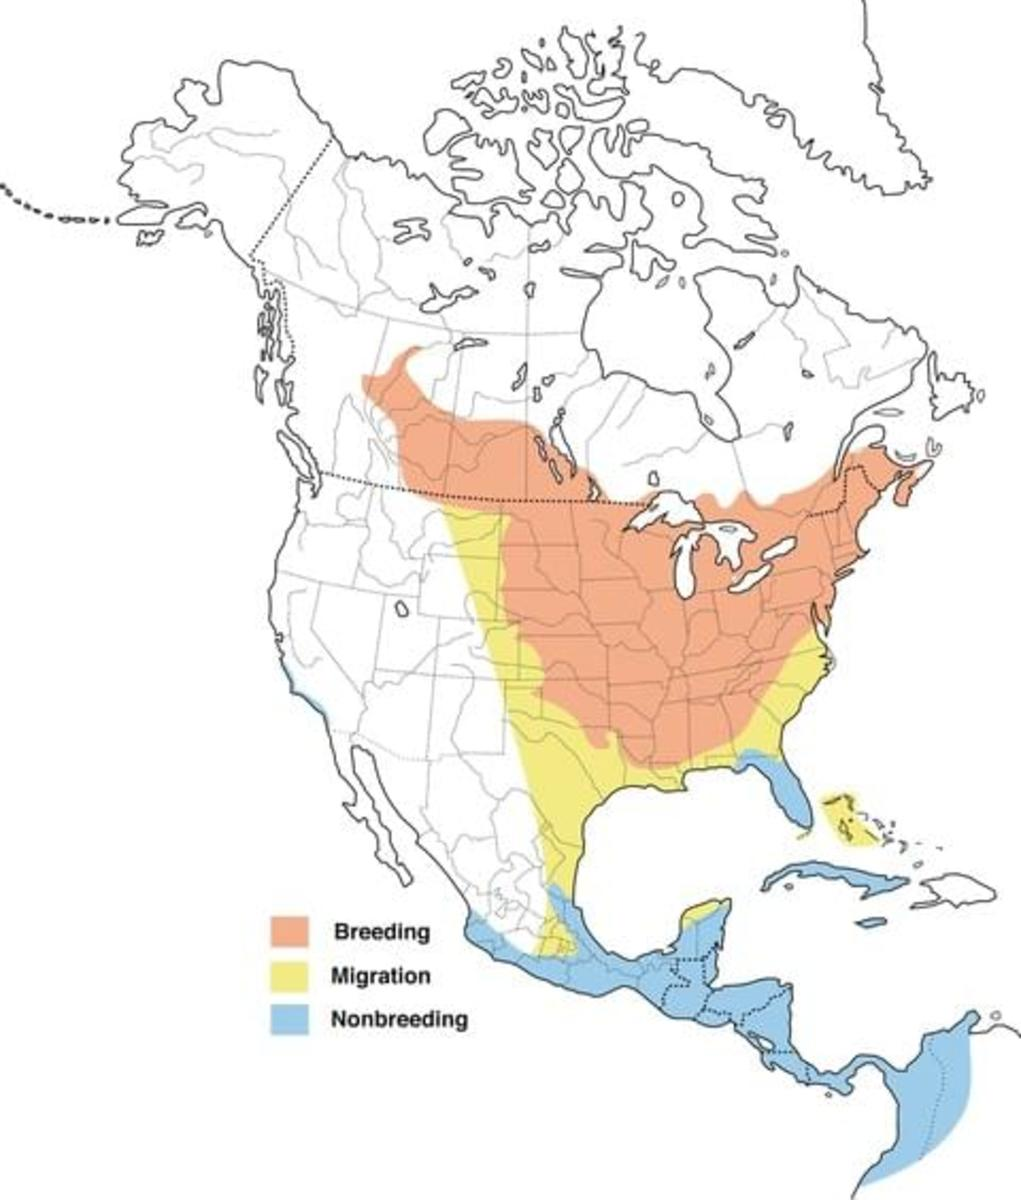 Map showing the range of the Baltimore Oriole birds in North America.